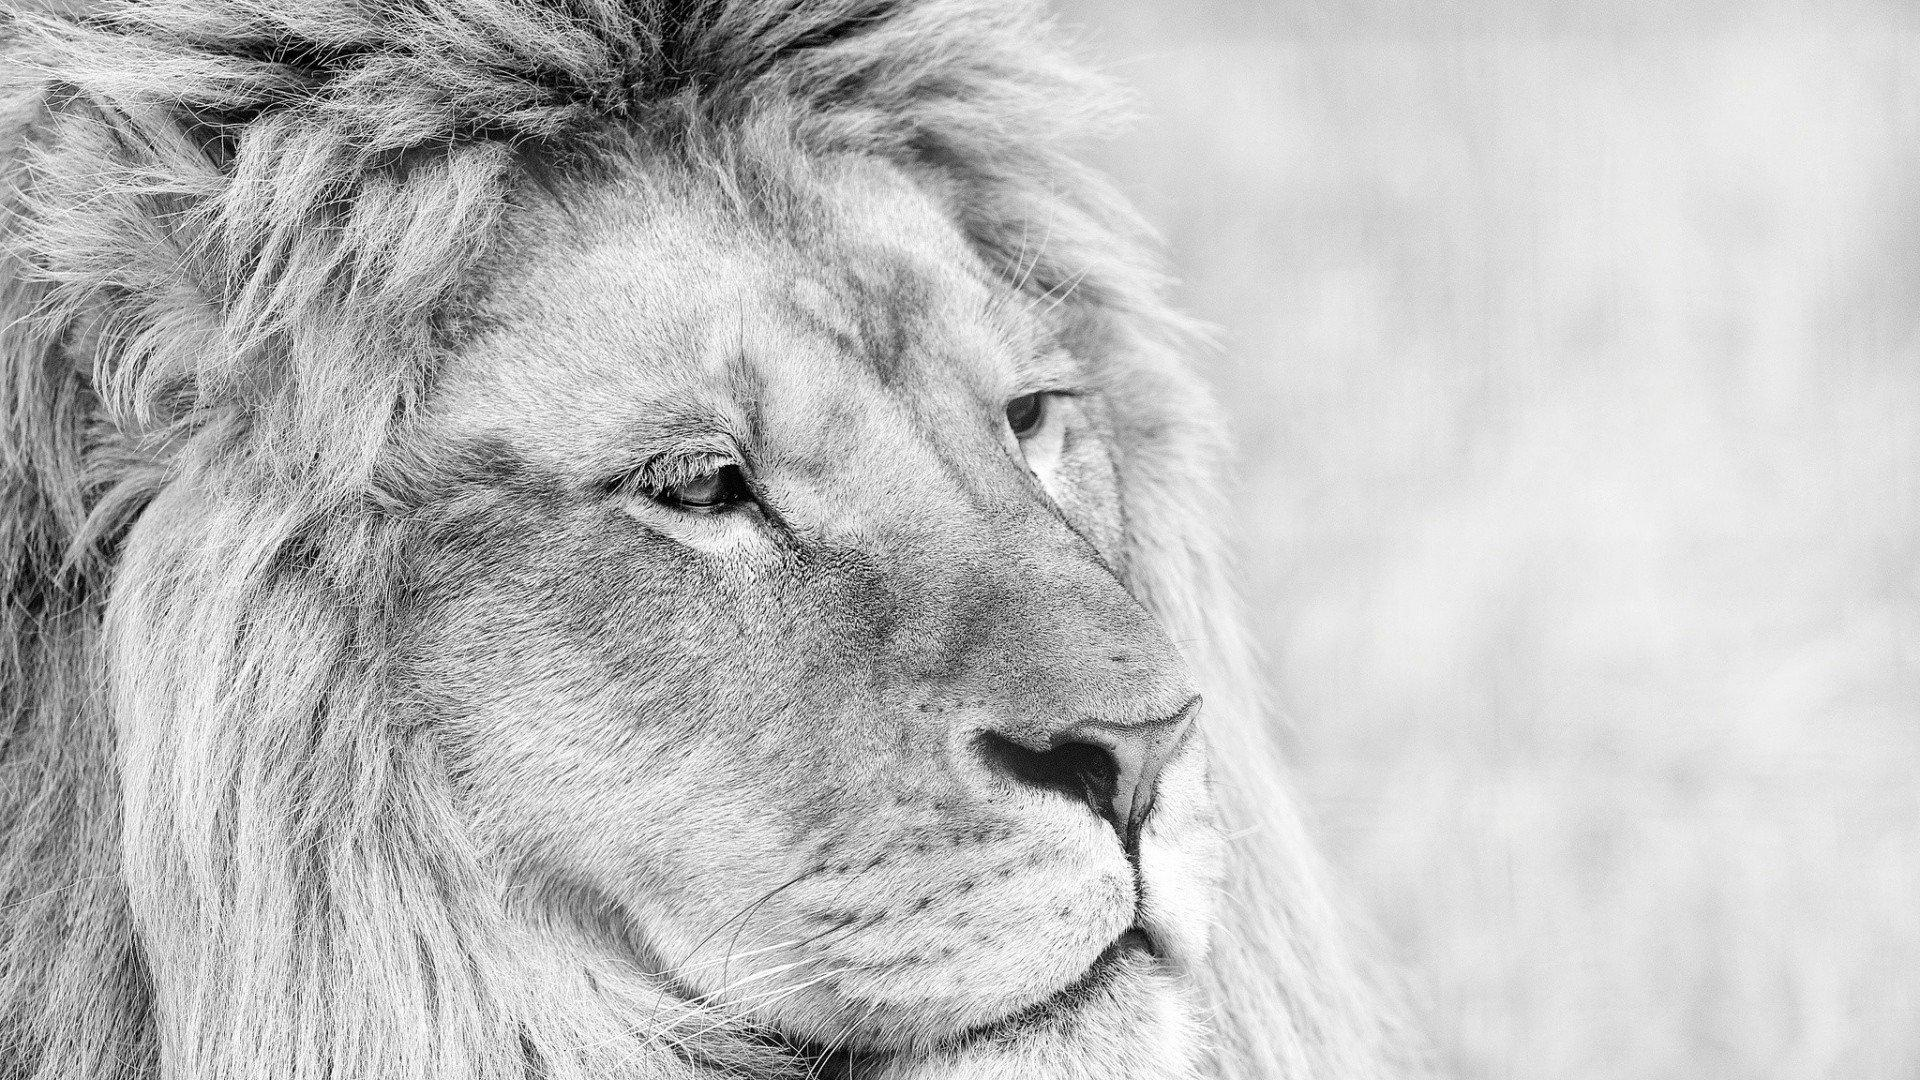 White Lion Wallpaper Hd Posted By Michelle Anderson